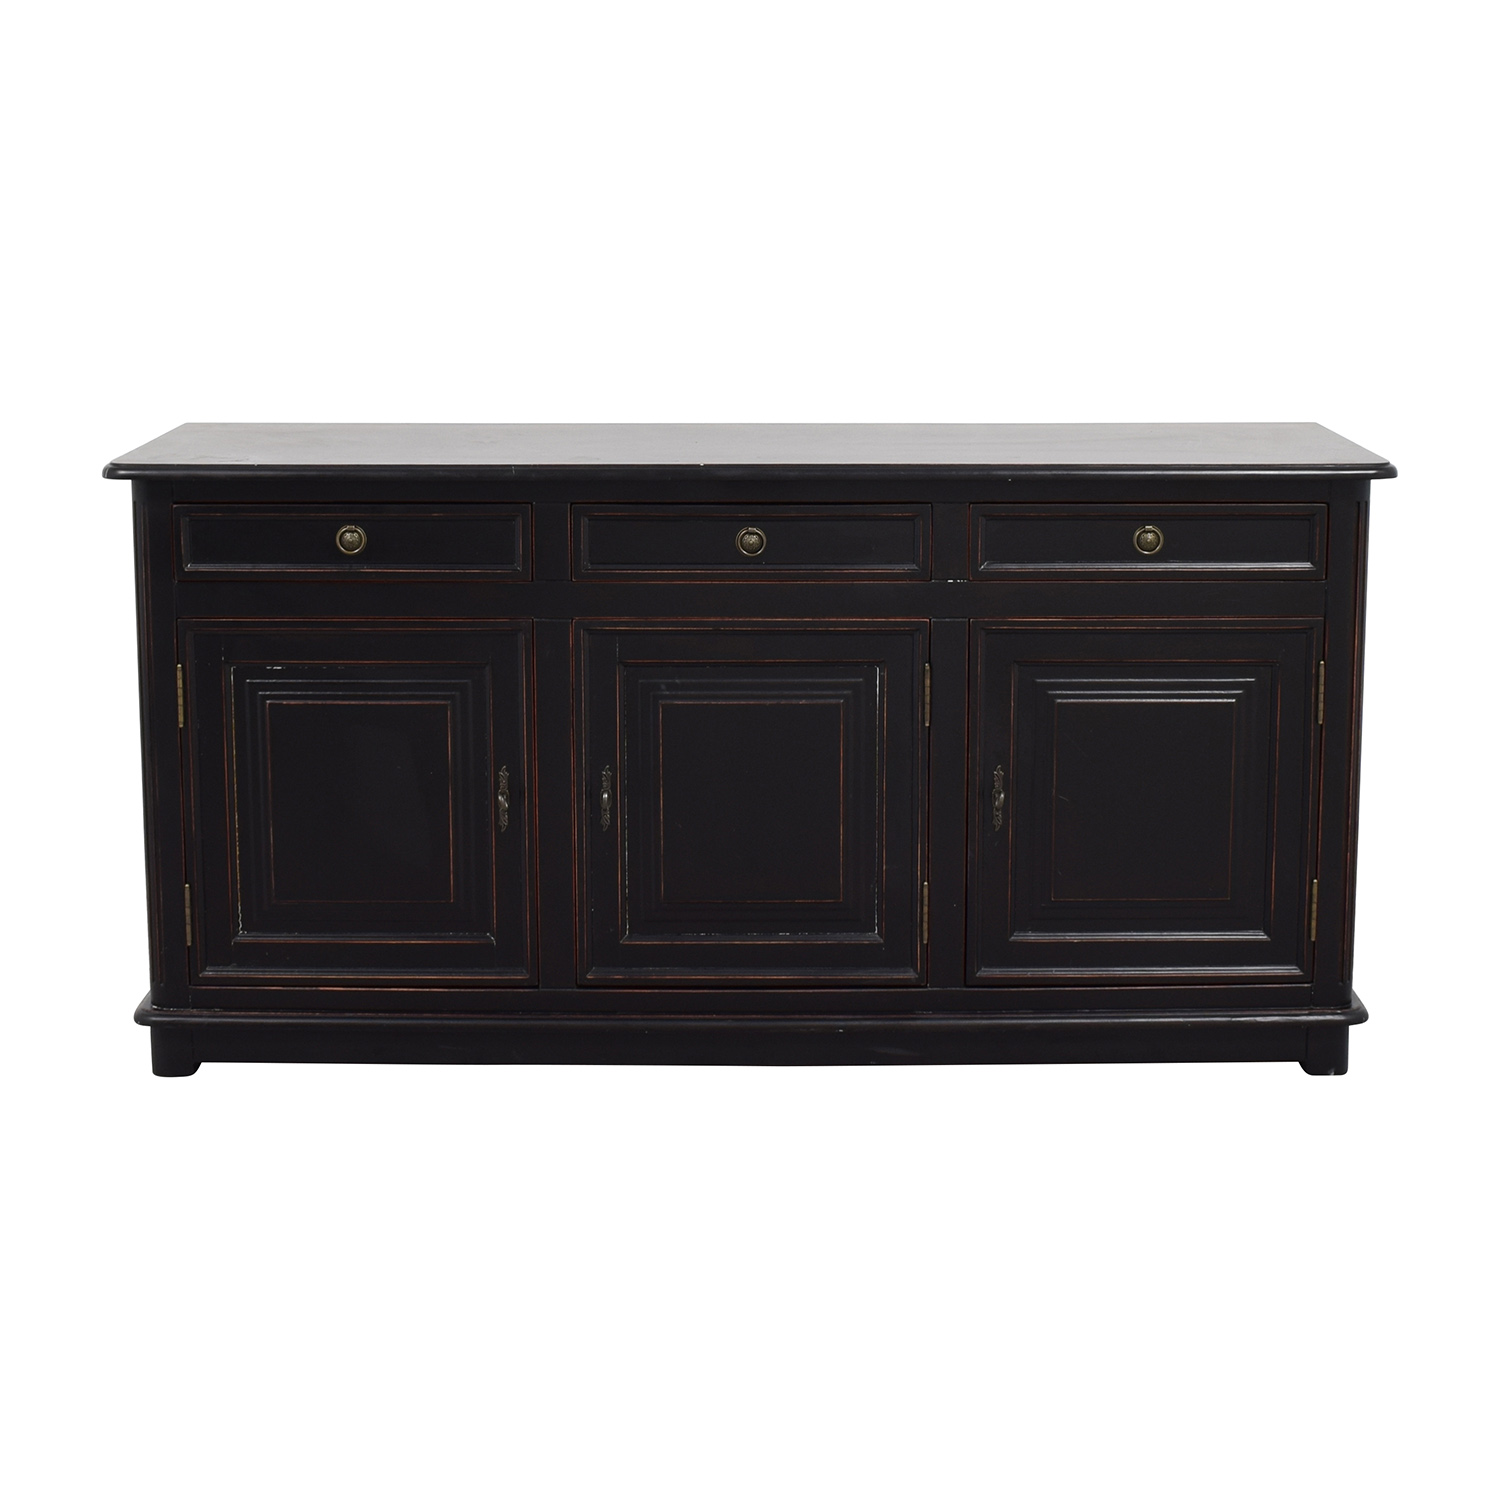 Ballard Designs Ballard Designs Dehavilland 3-Drawer Console or Sidetable dimensions